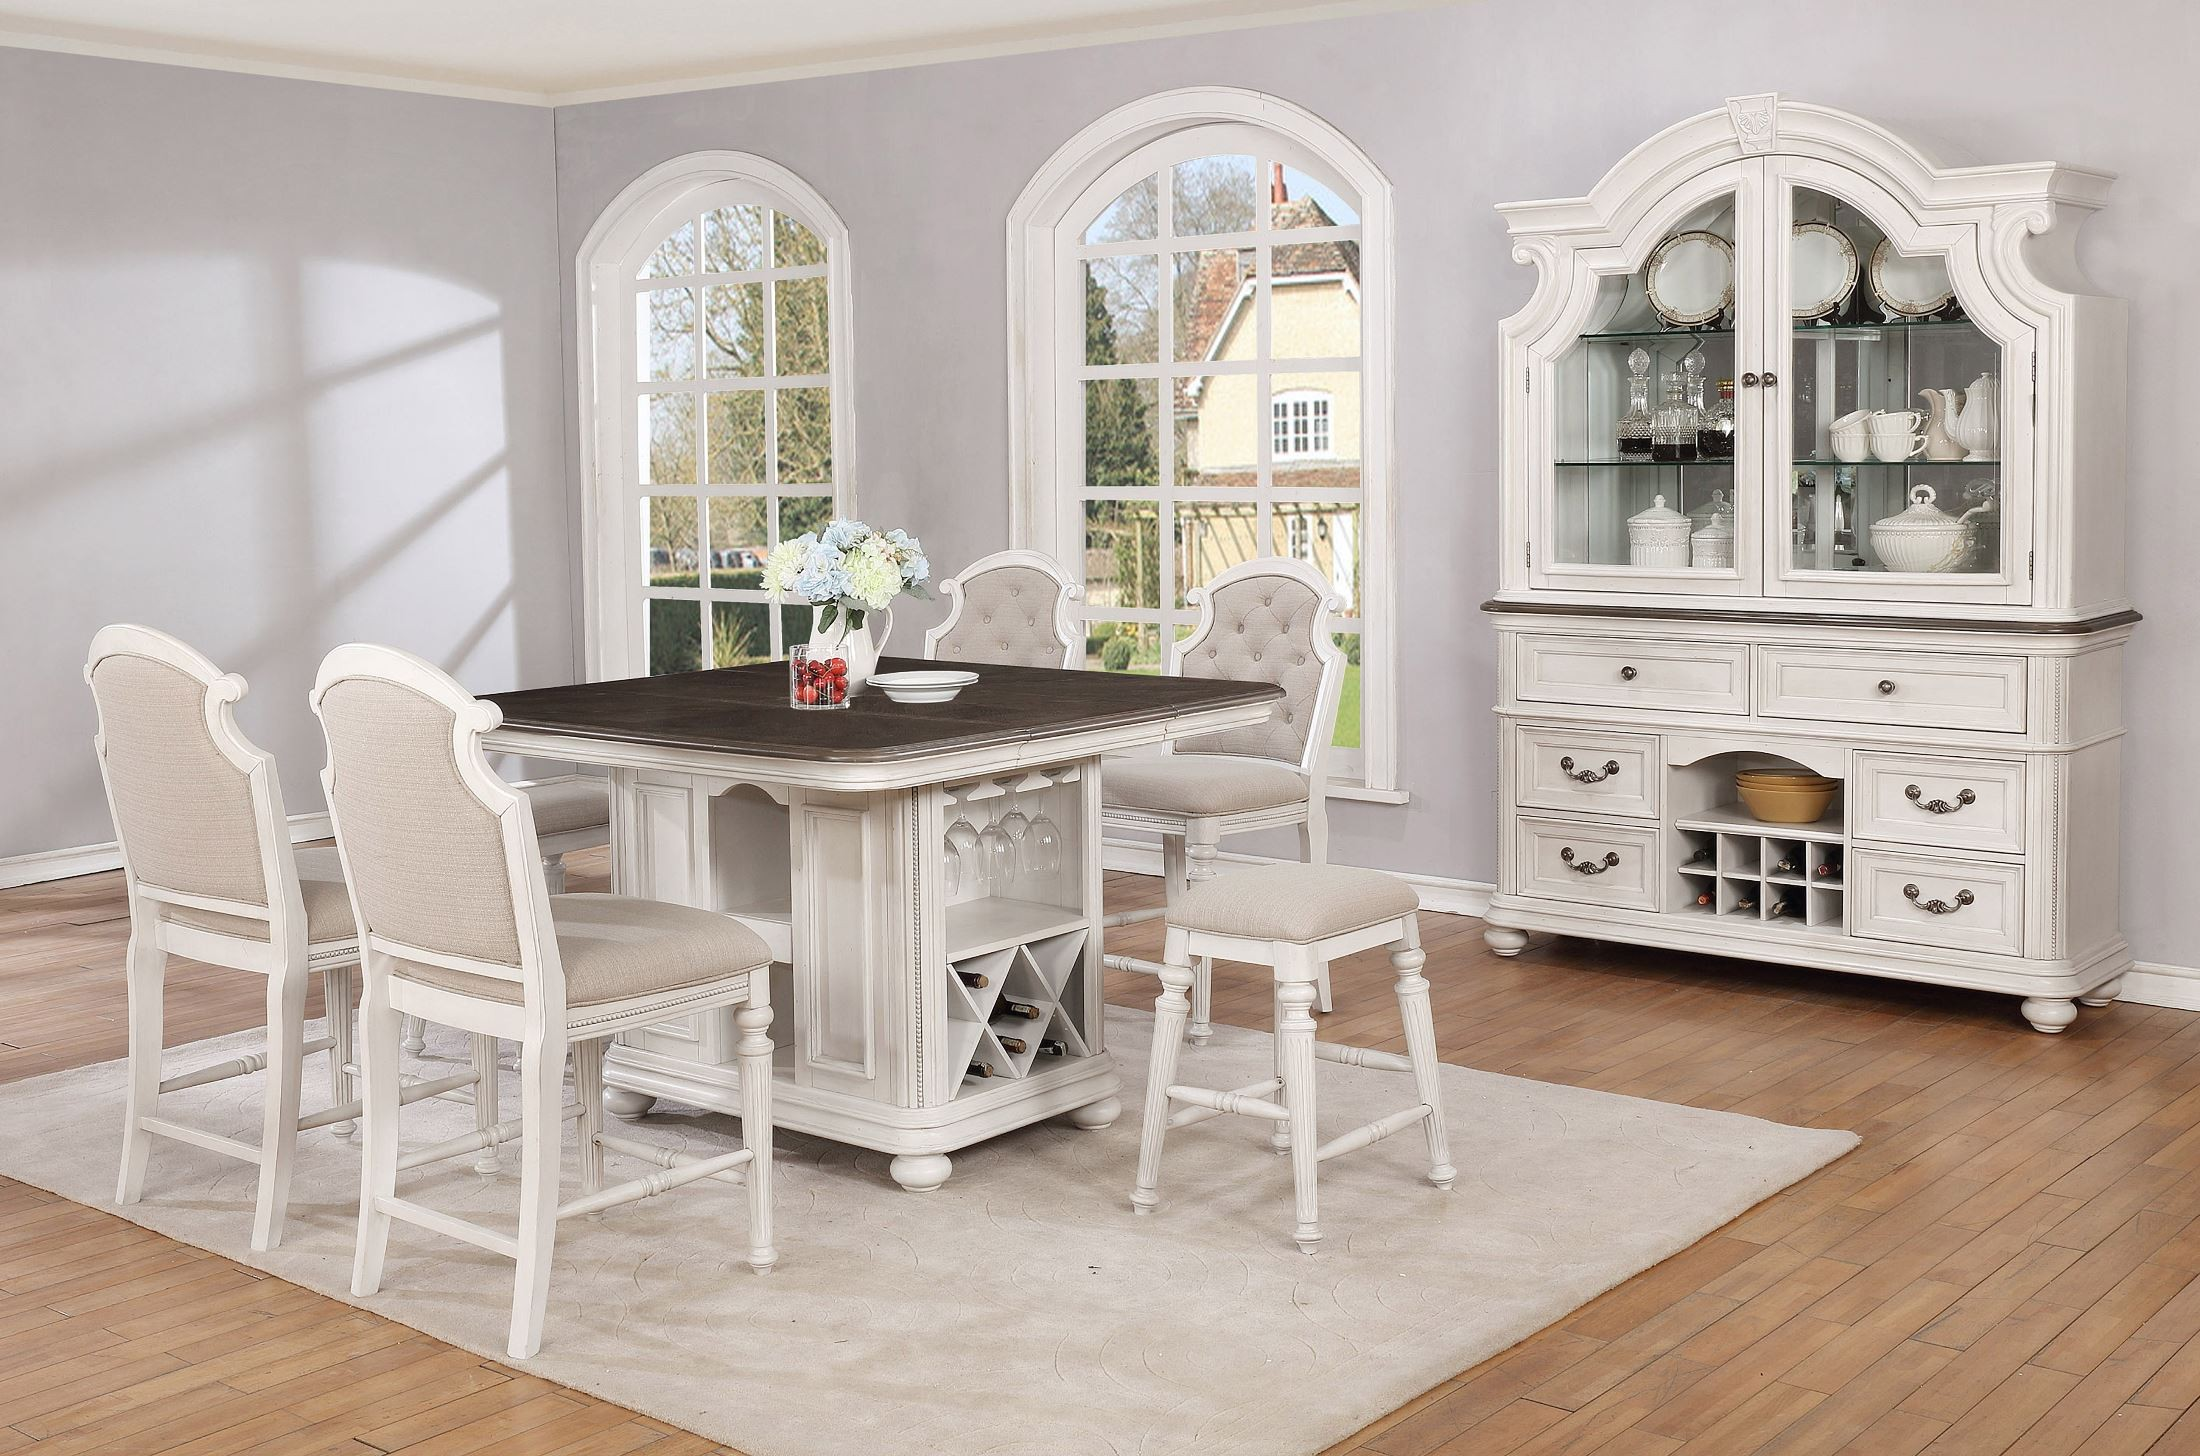 kitchen island set west chester weathered oak kitchen island set from avalon furniture coleman furniture 425